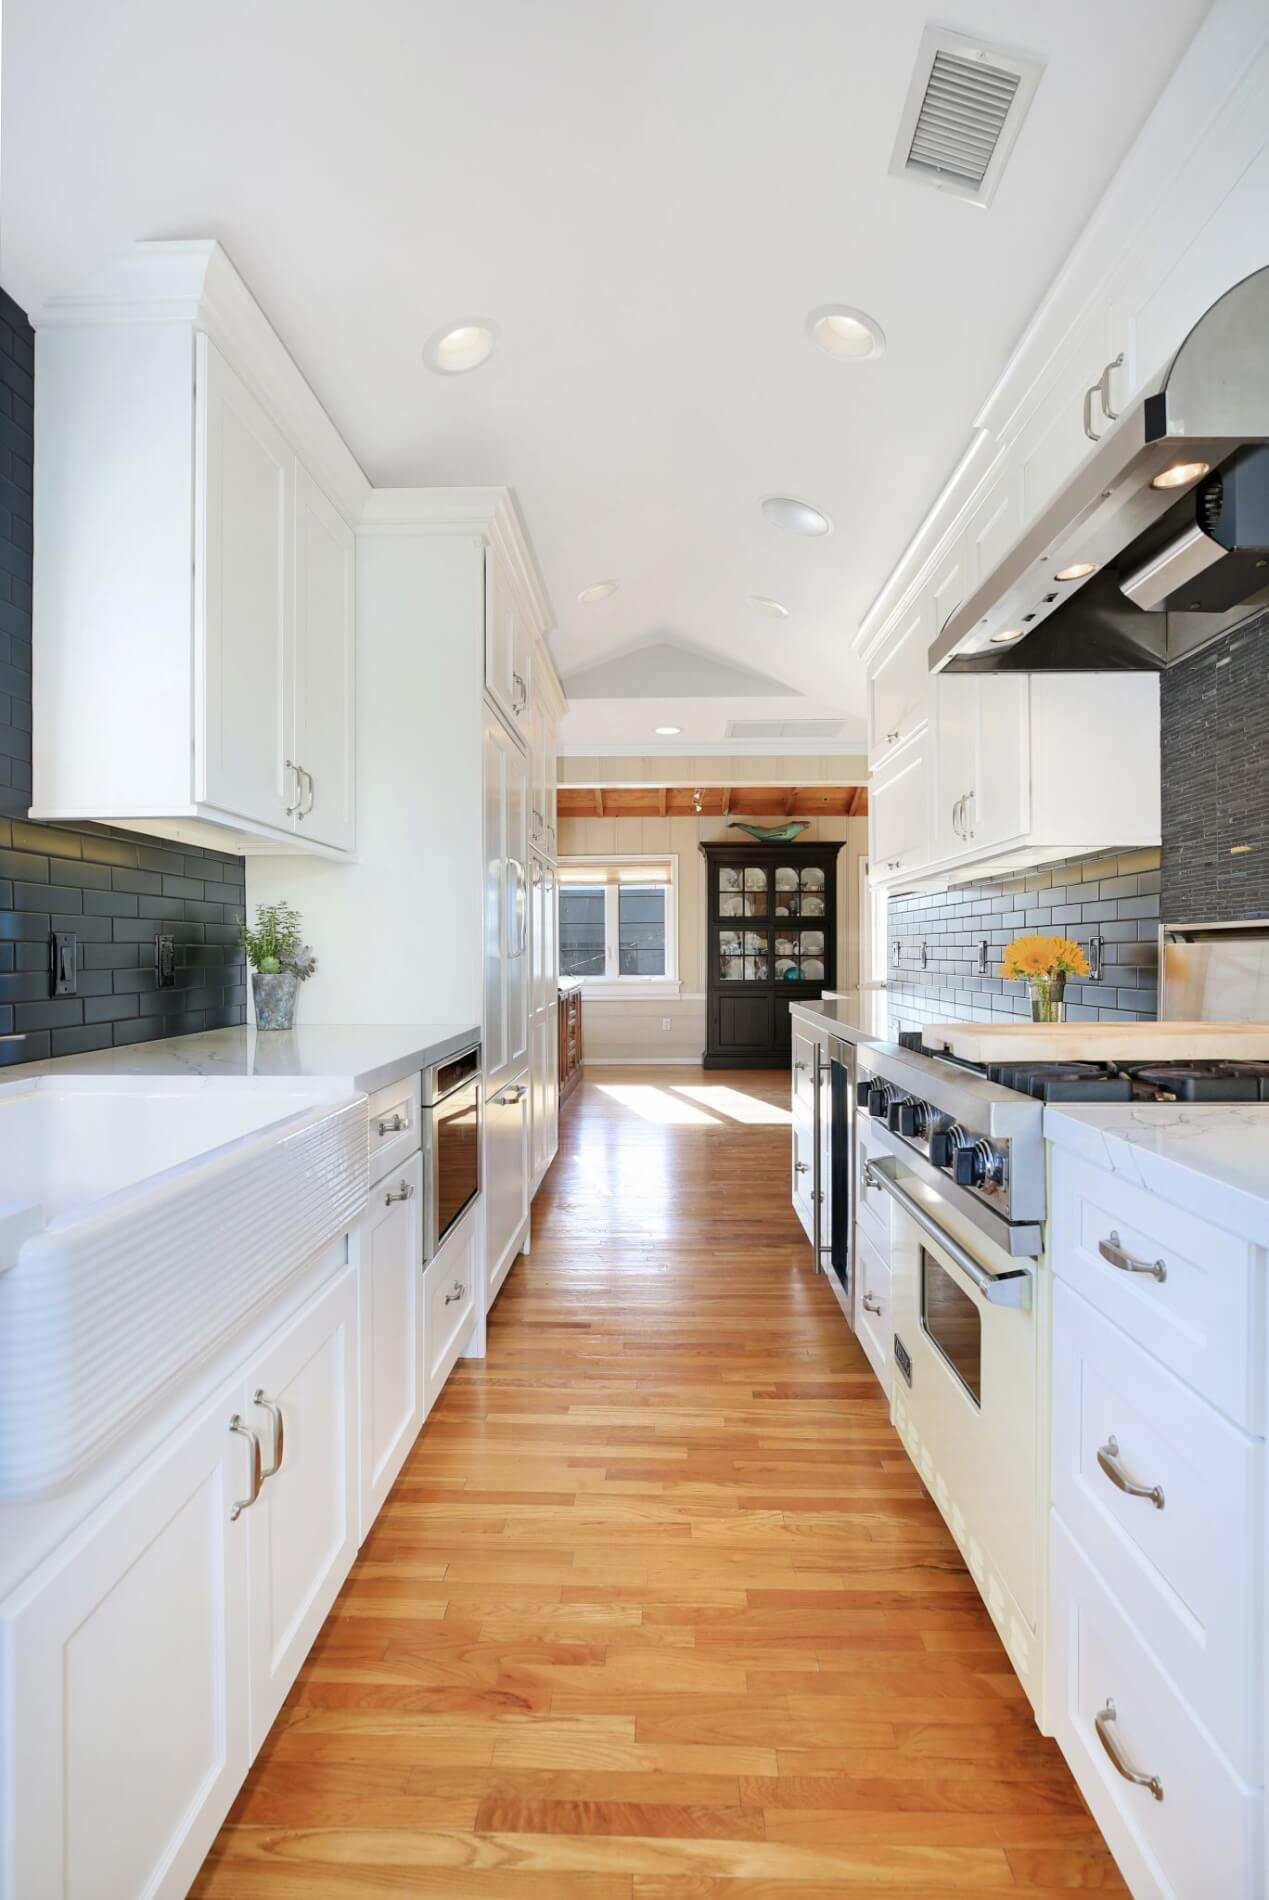 galley kitchen with white cabinets and countertops